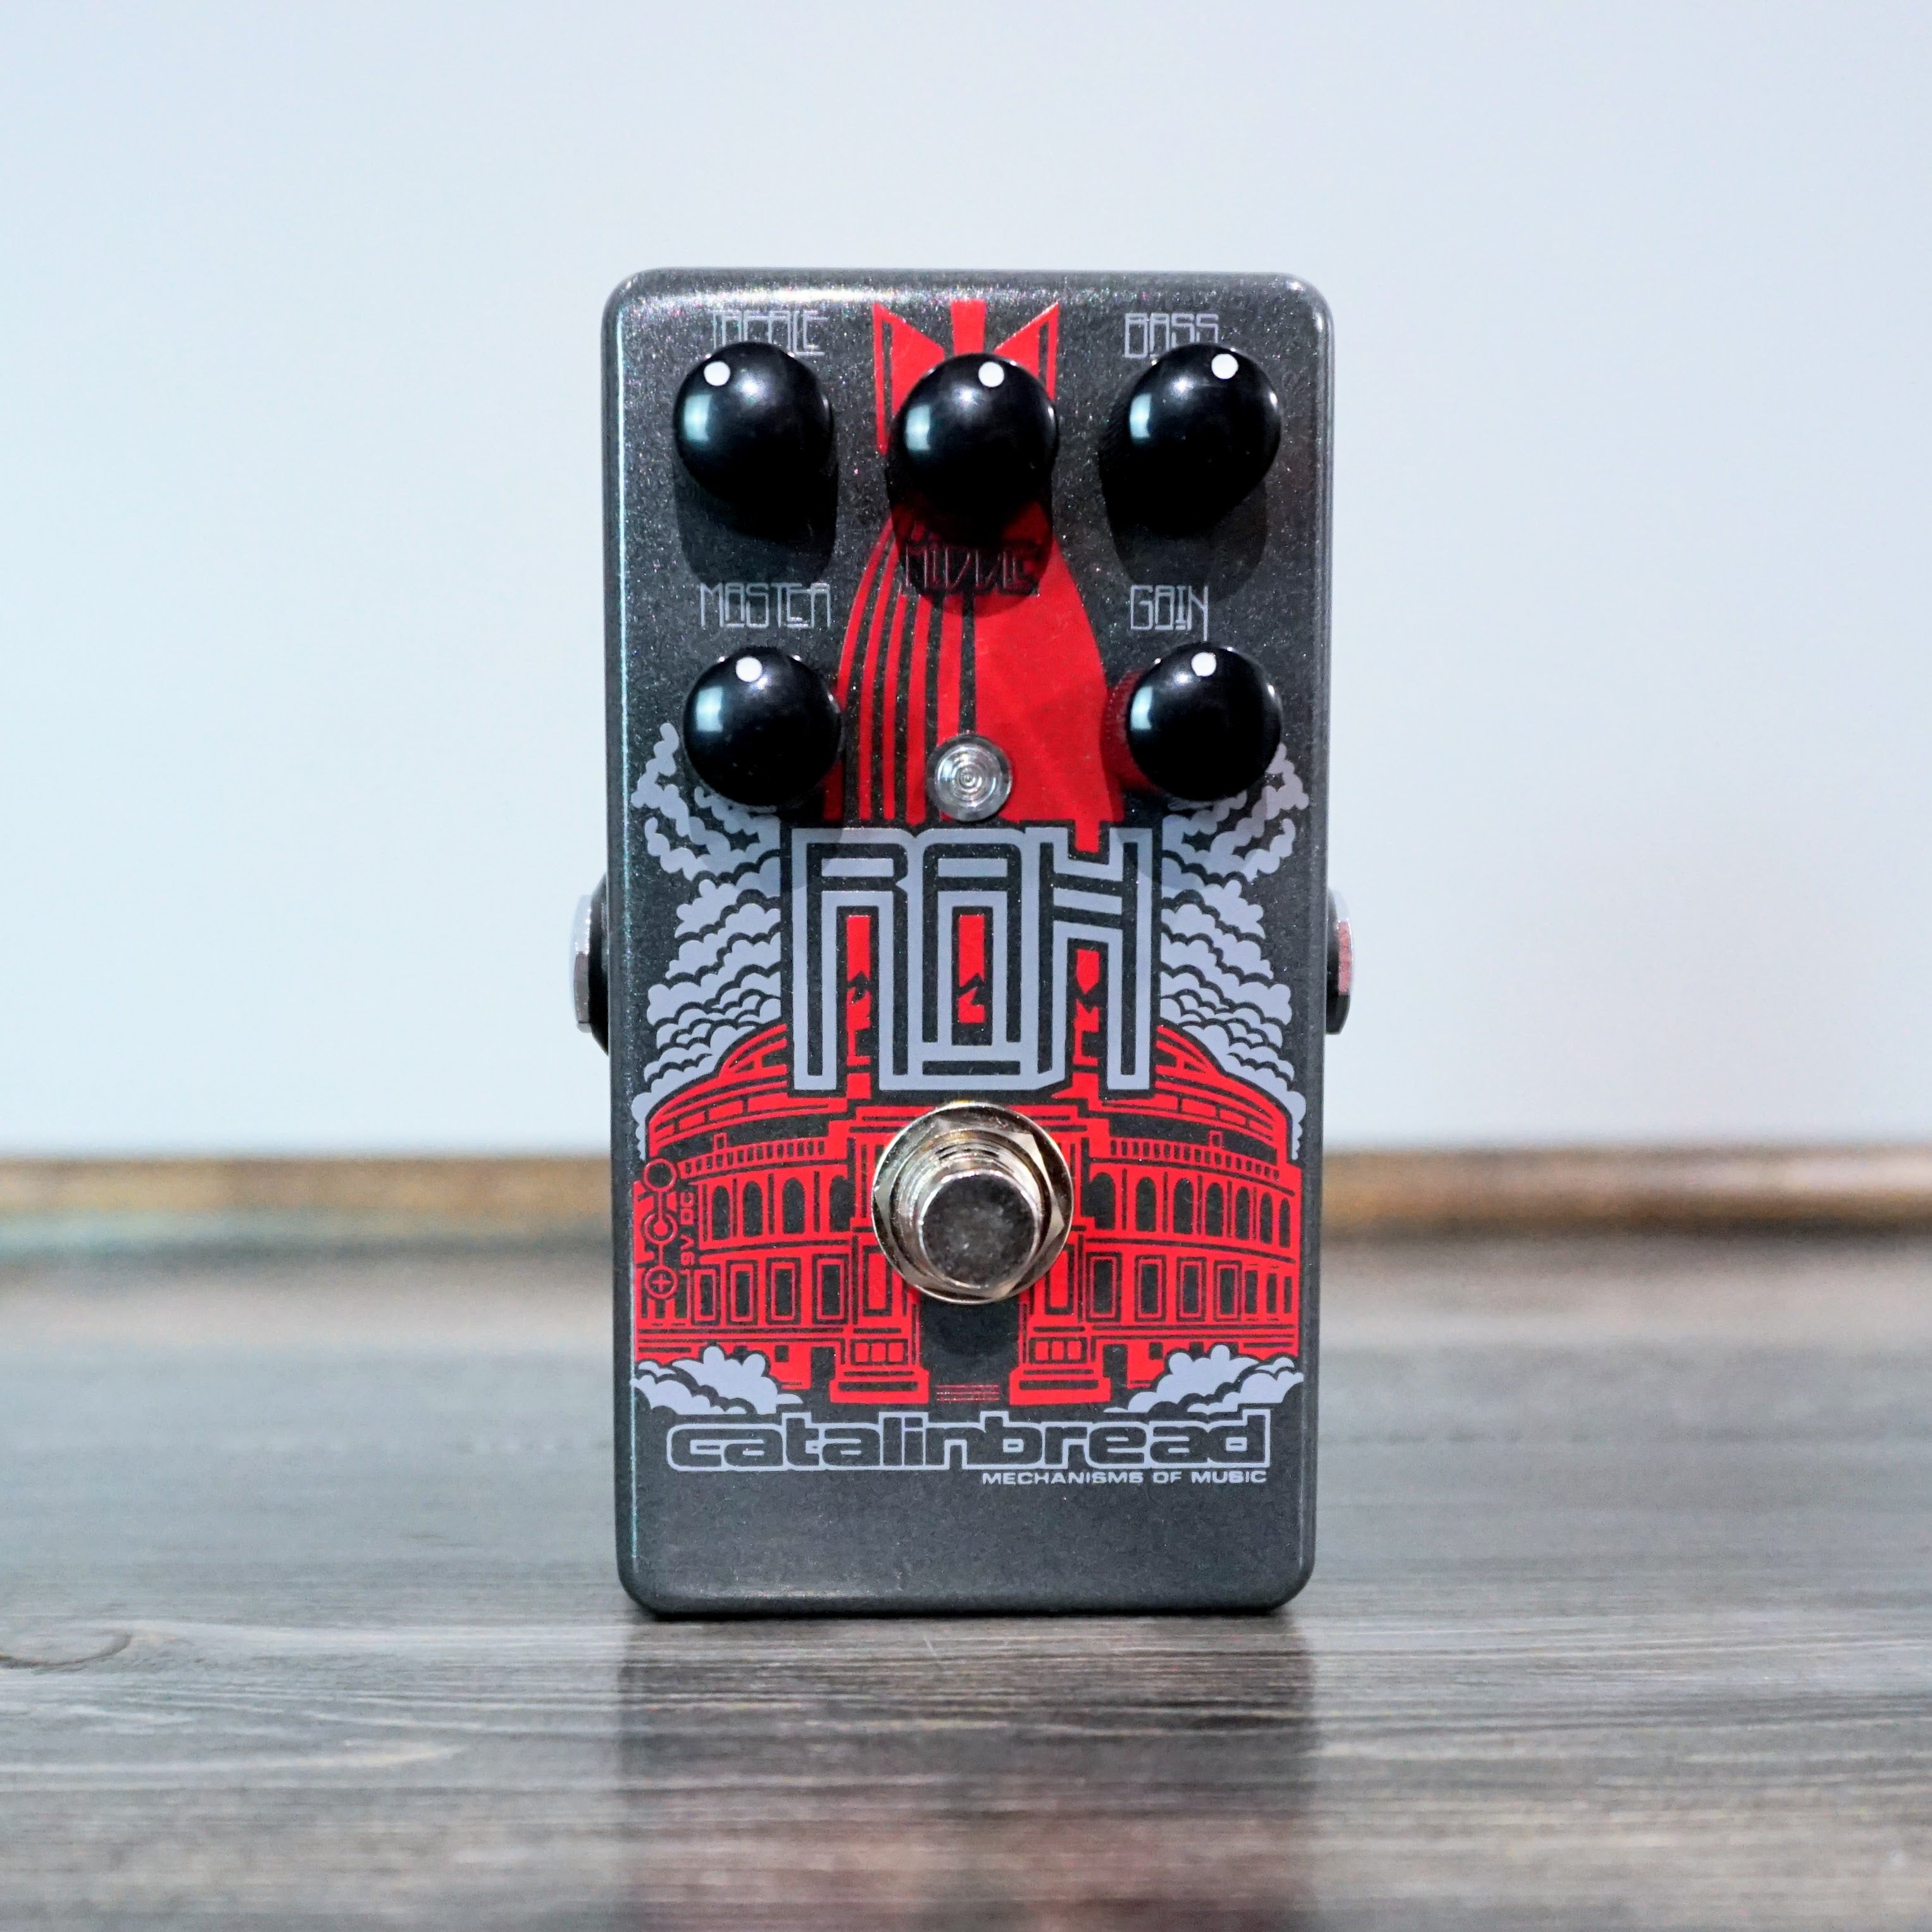 Catalinbread RAH - NathansGear.Co